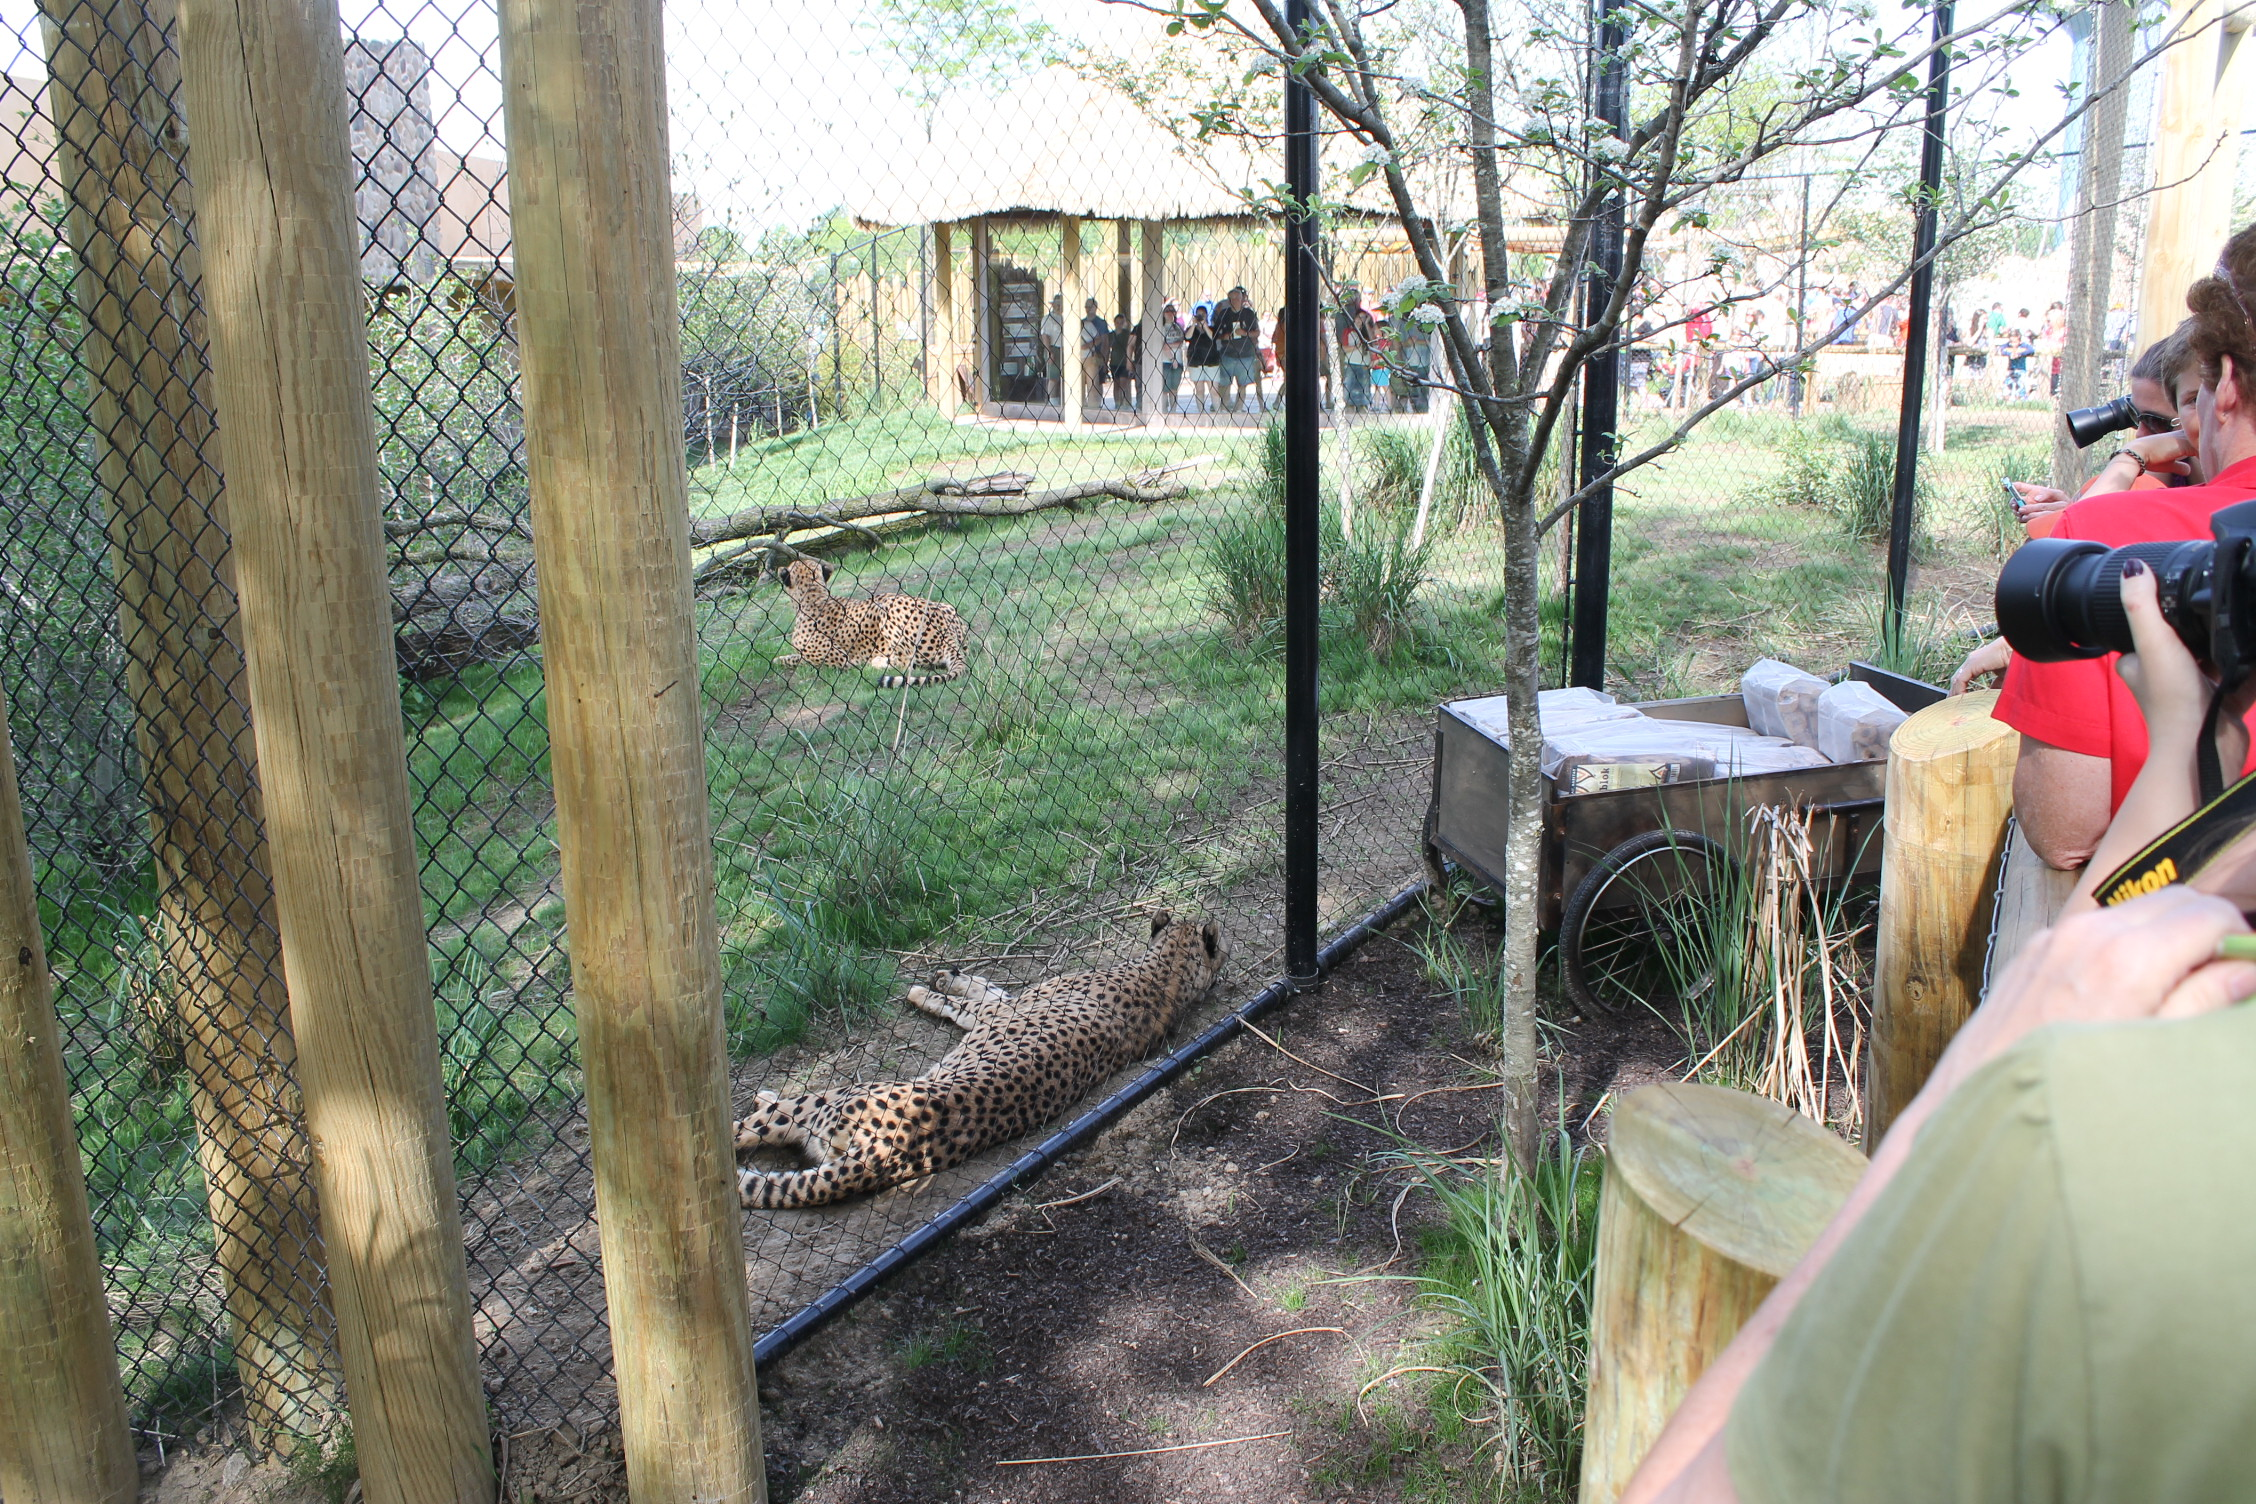 These Cheetahs enjoy public interaction.